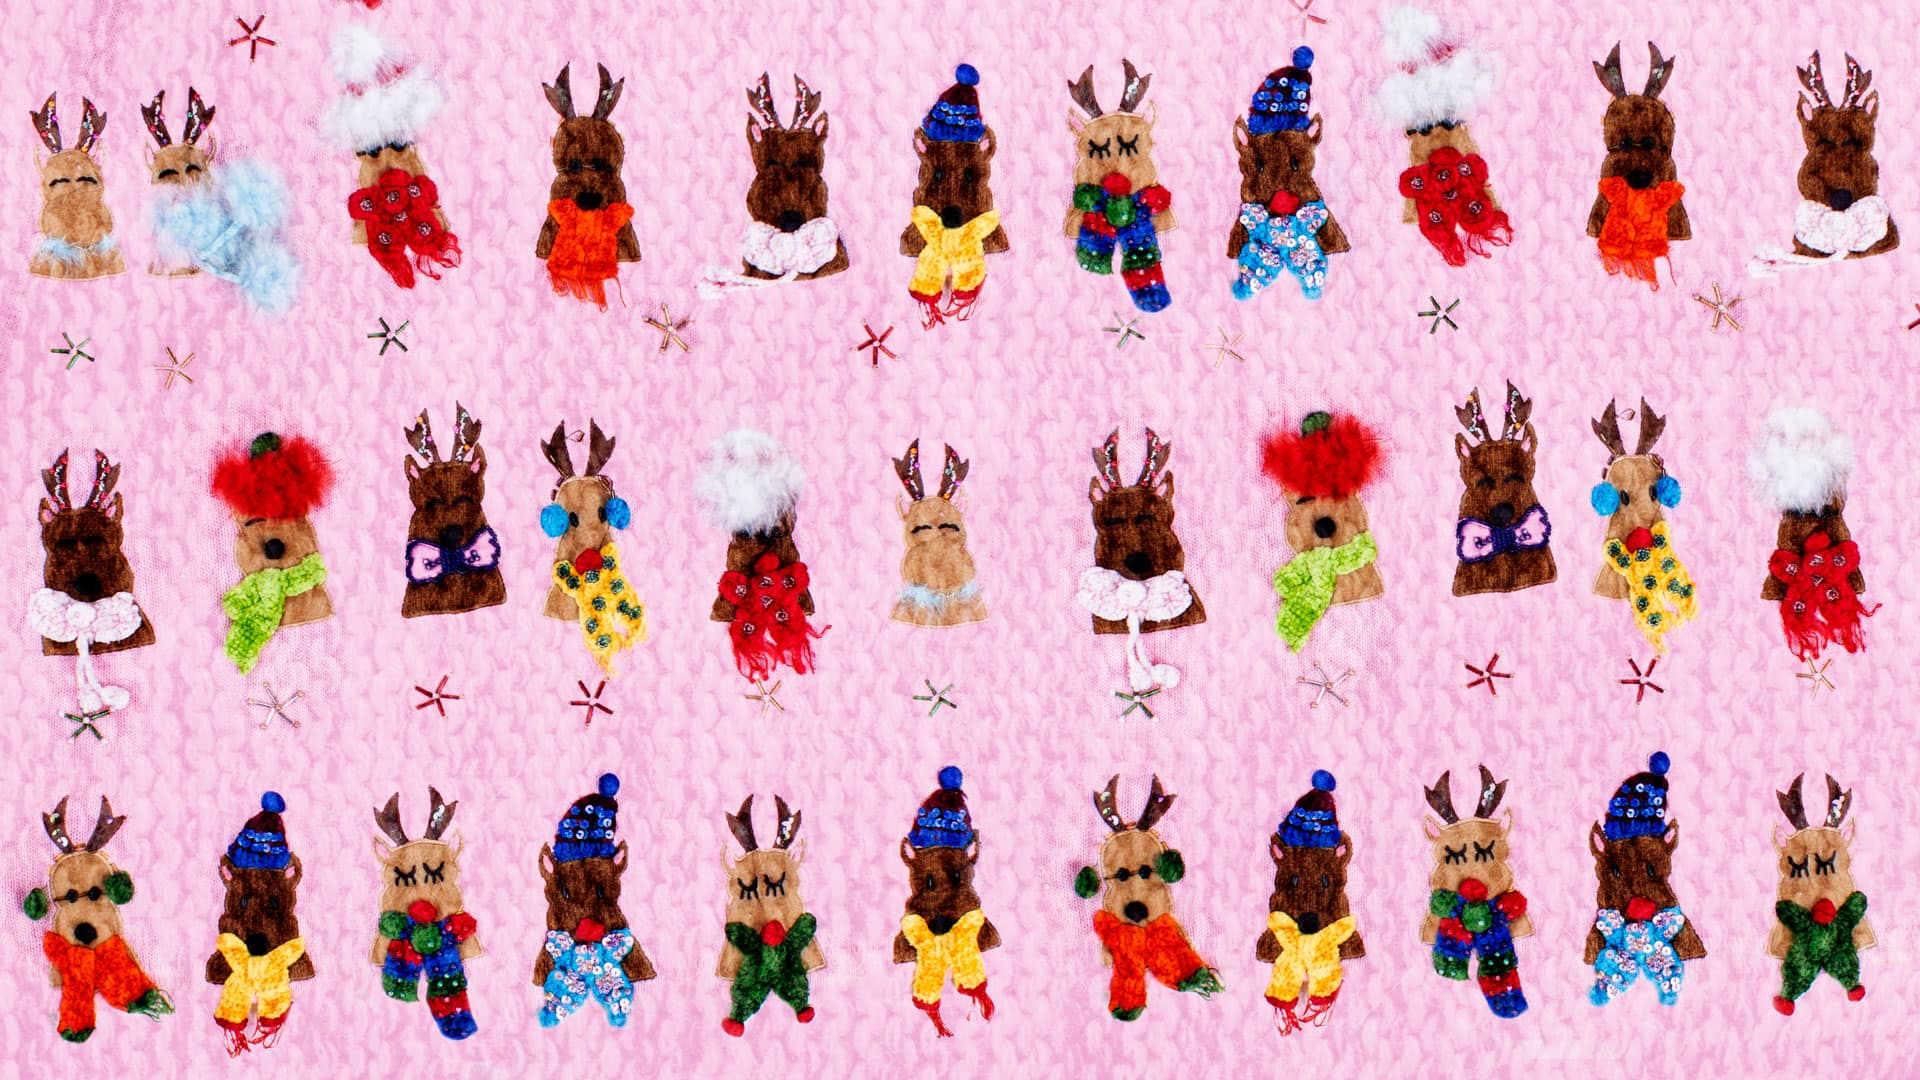 Ugly Christmas sweater featuring lots of reindeer wearing hats and scarves on a pink sweater background